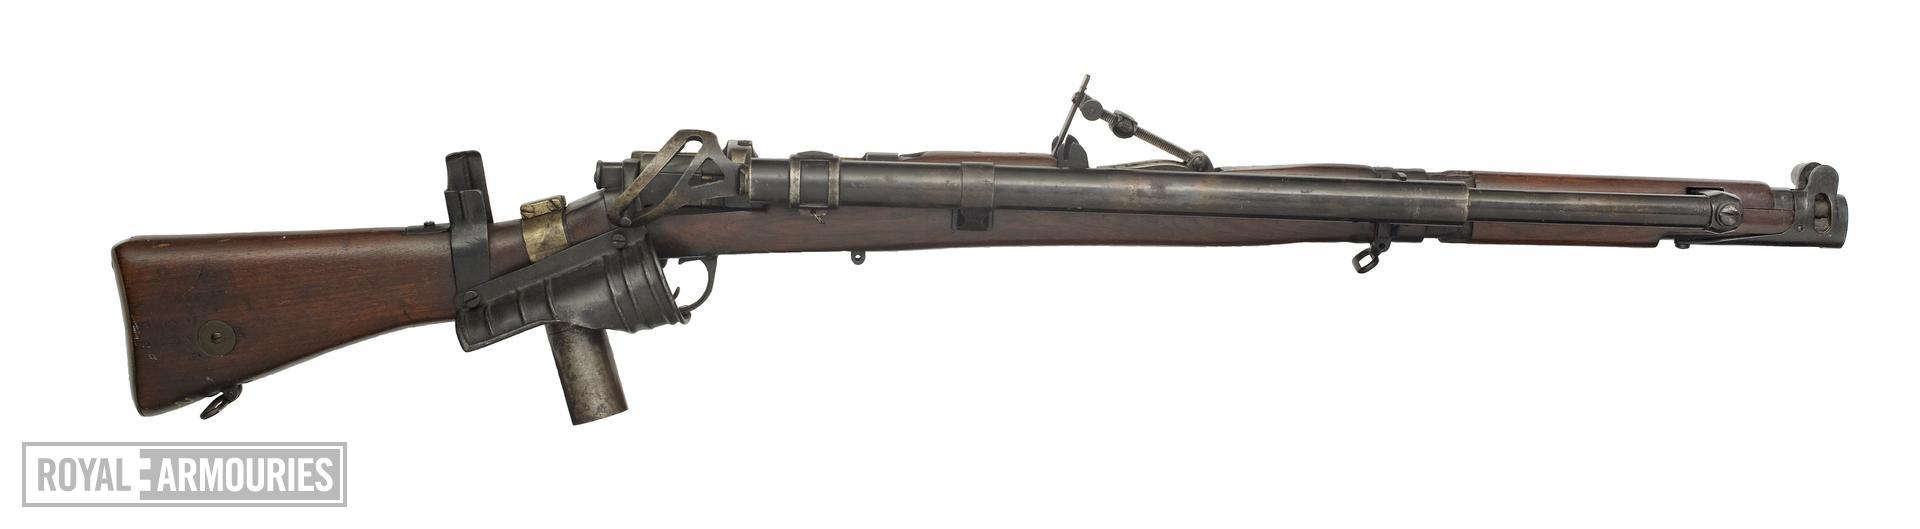 Centrefire self-loading magazine rifle - Lee-Enfield Mk. III Converted to self-loading using the Howell patent conversion.